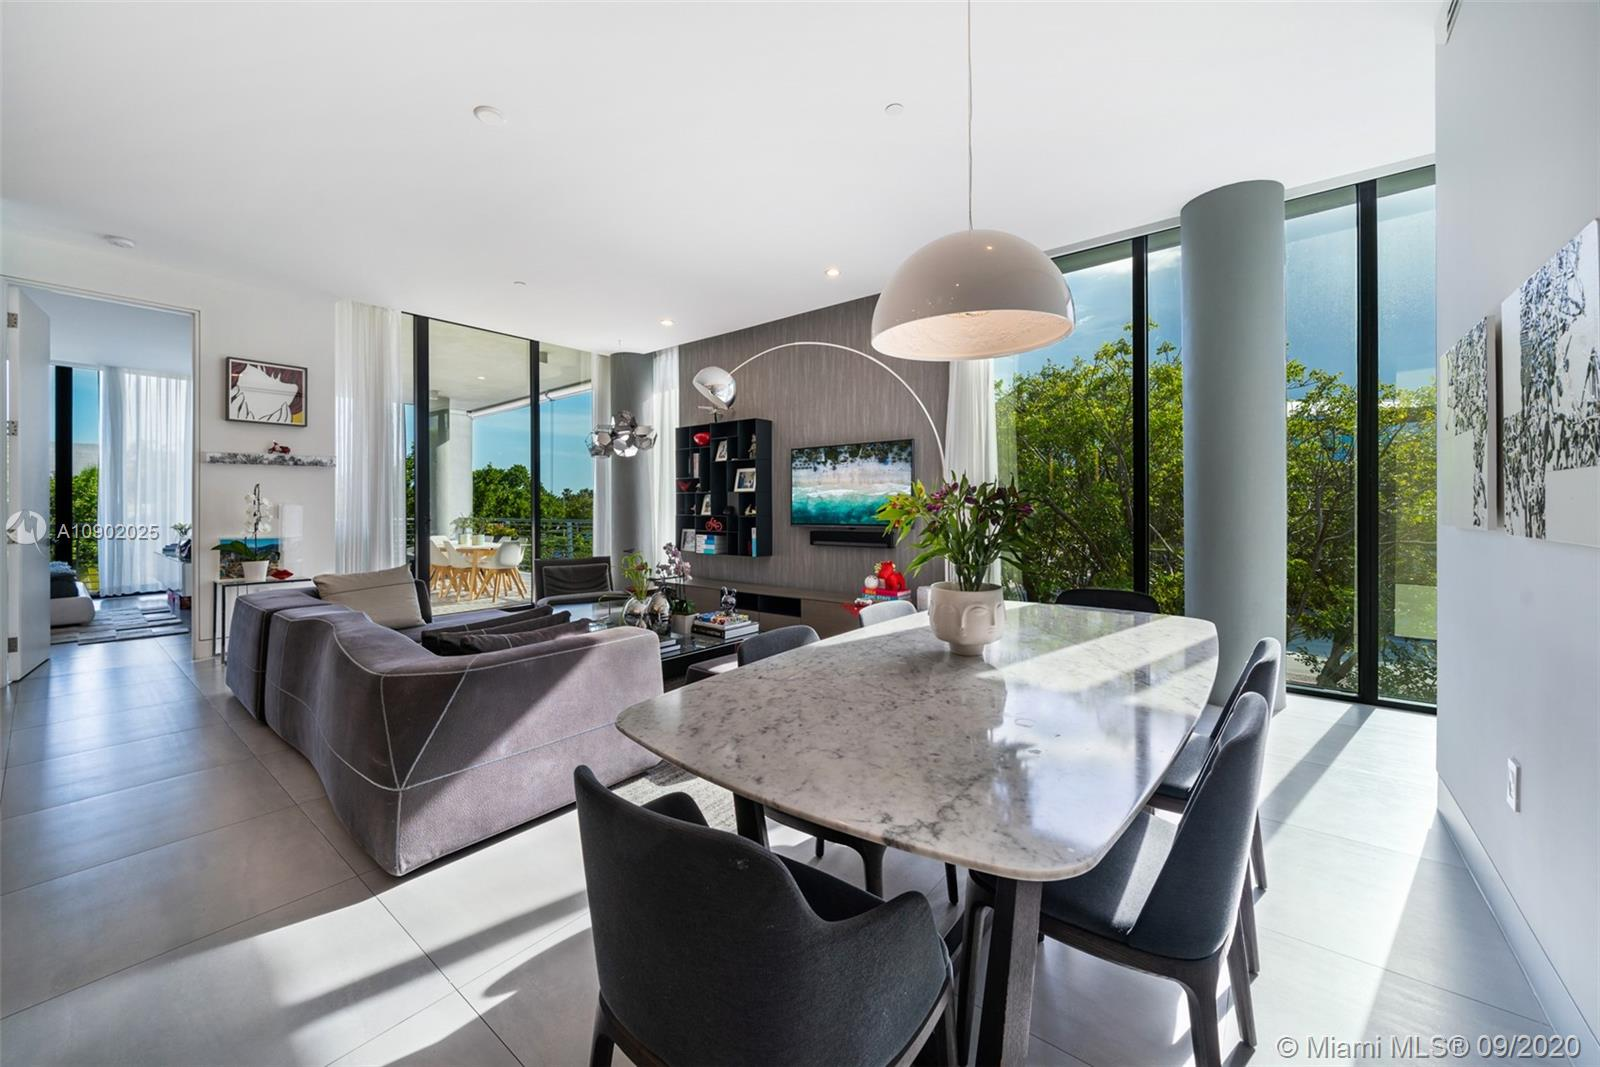 Live in this unique jewelry in Key Biscayne. The only one condo with private elevator access and no neighbors in the building, Fully automated condo with lutron and sonos system controlled by phone, Automatic blinds and terrace's wind sensor shades. The largest terrace in the building with a remodeled summer kitchen, refrigerator and ice maker build in. Completed remodeled Master bedroom with Spazio di Casa Italian closets. Remodeled master bathroom with toto automatic toilet. Remodeled laundry room with comfortable closet and laudry tub. Air scenses automatic system. Huge remodeled two floors storage at street level. Stunning views all around the condo with Lush green vegetation unique in the key. 2 parking space ready to receive your electrics cars plus a golf cart parking space.